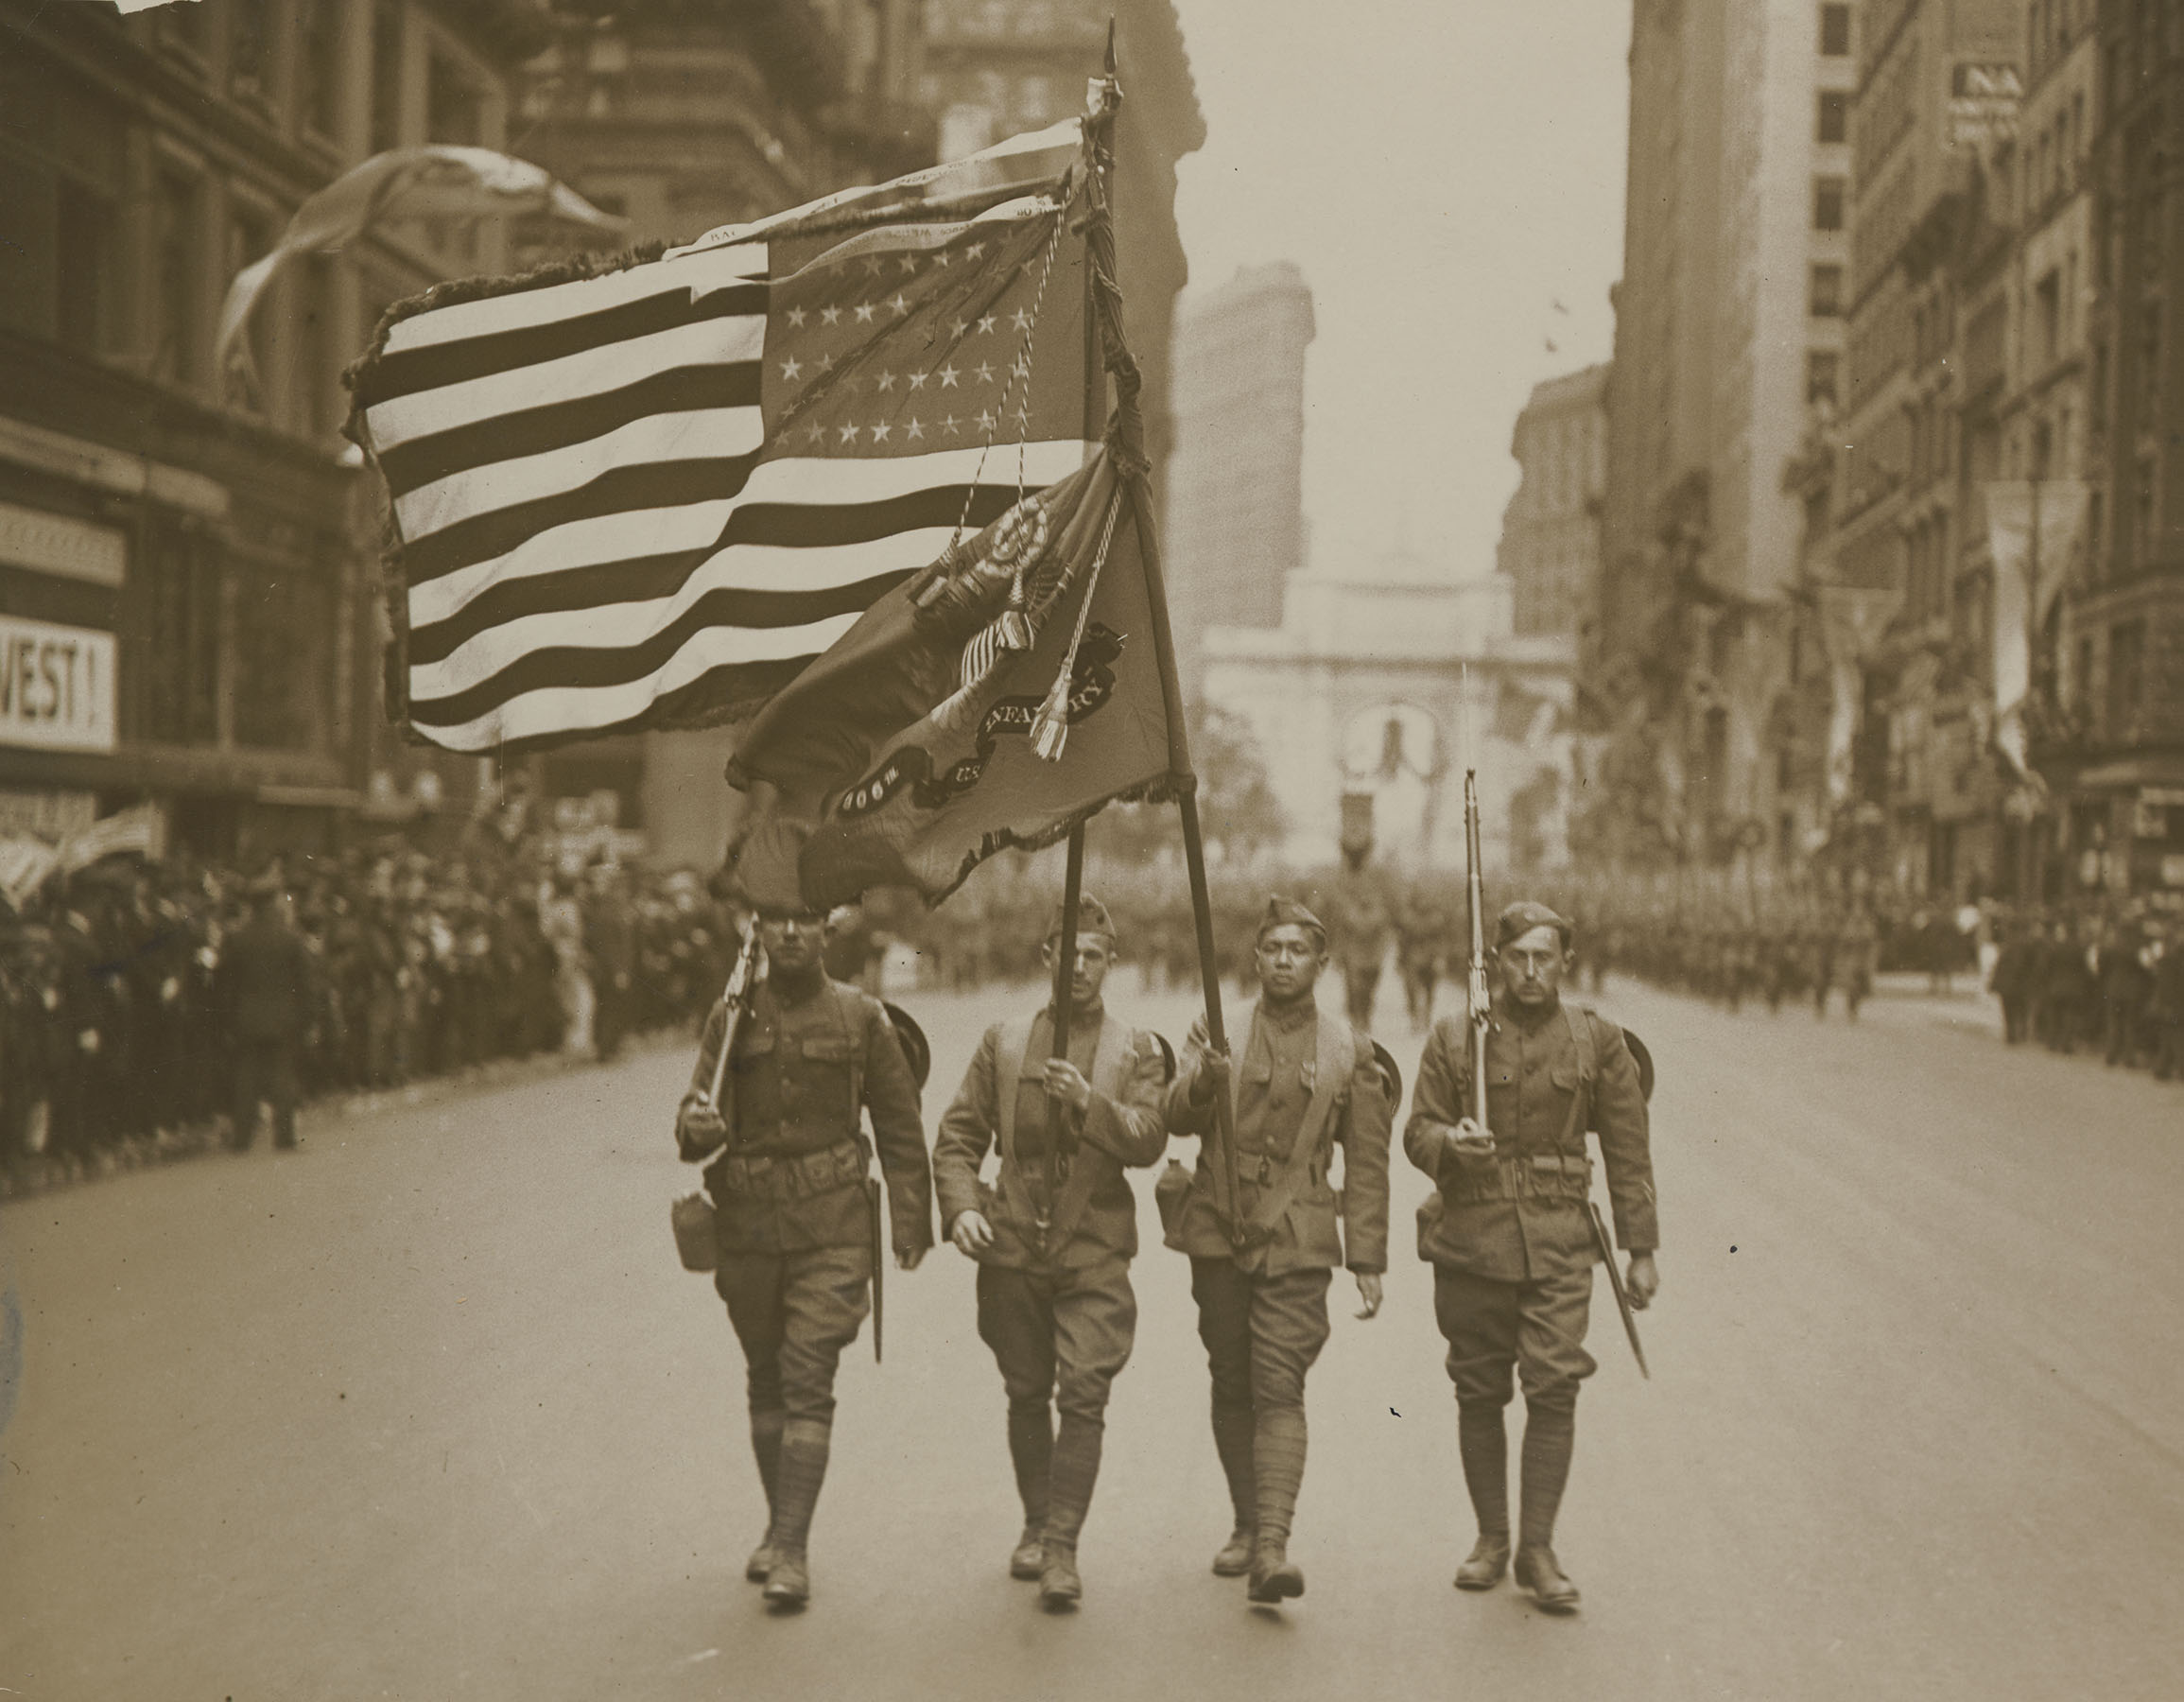 Parade of the 77th Division, May 6, 1919. Color sergeant Sing Kee (2nd from right), was awarded the Distinguished Service Cross and the French Croix de Guerre. He was the first Chinese American to be decorated for bravery. Underwood & Underwood. Mayor's Reception Committee, NYC Municipal Archives.